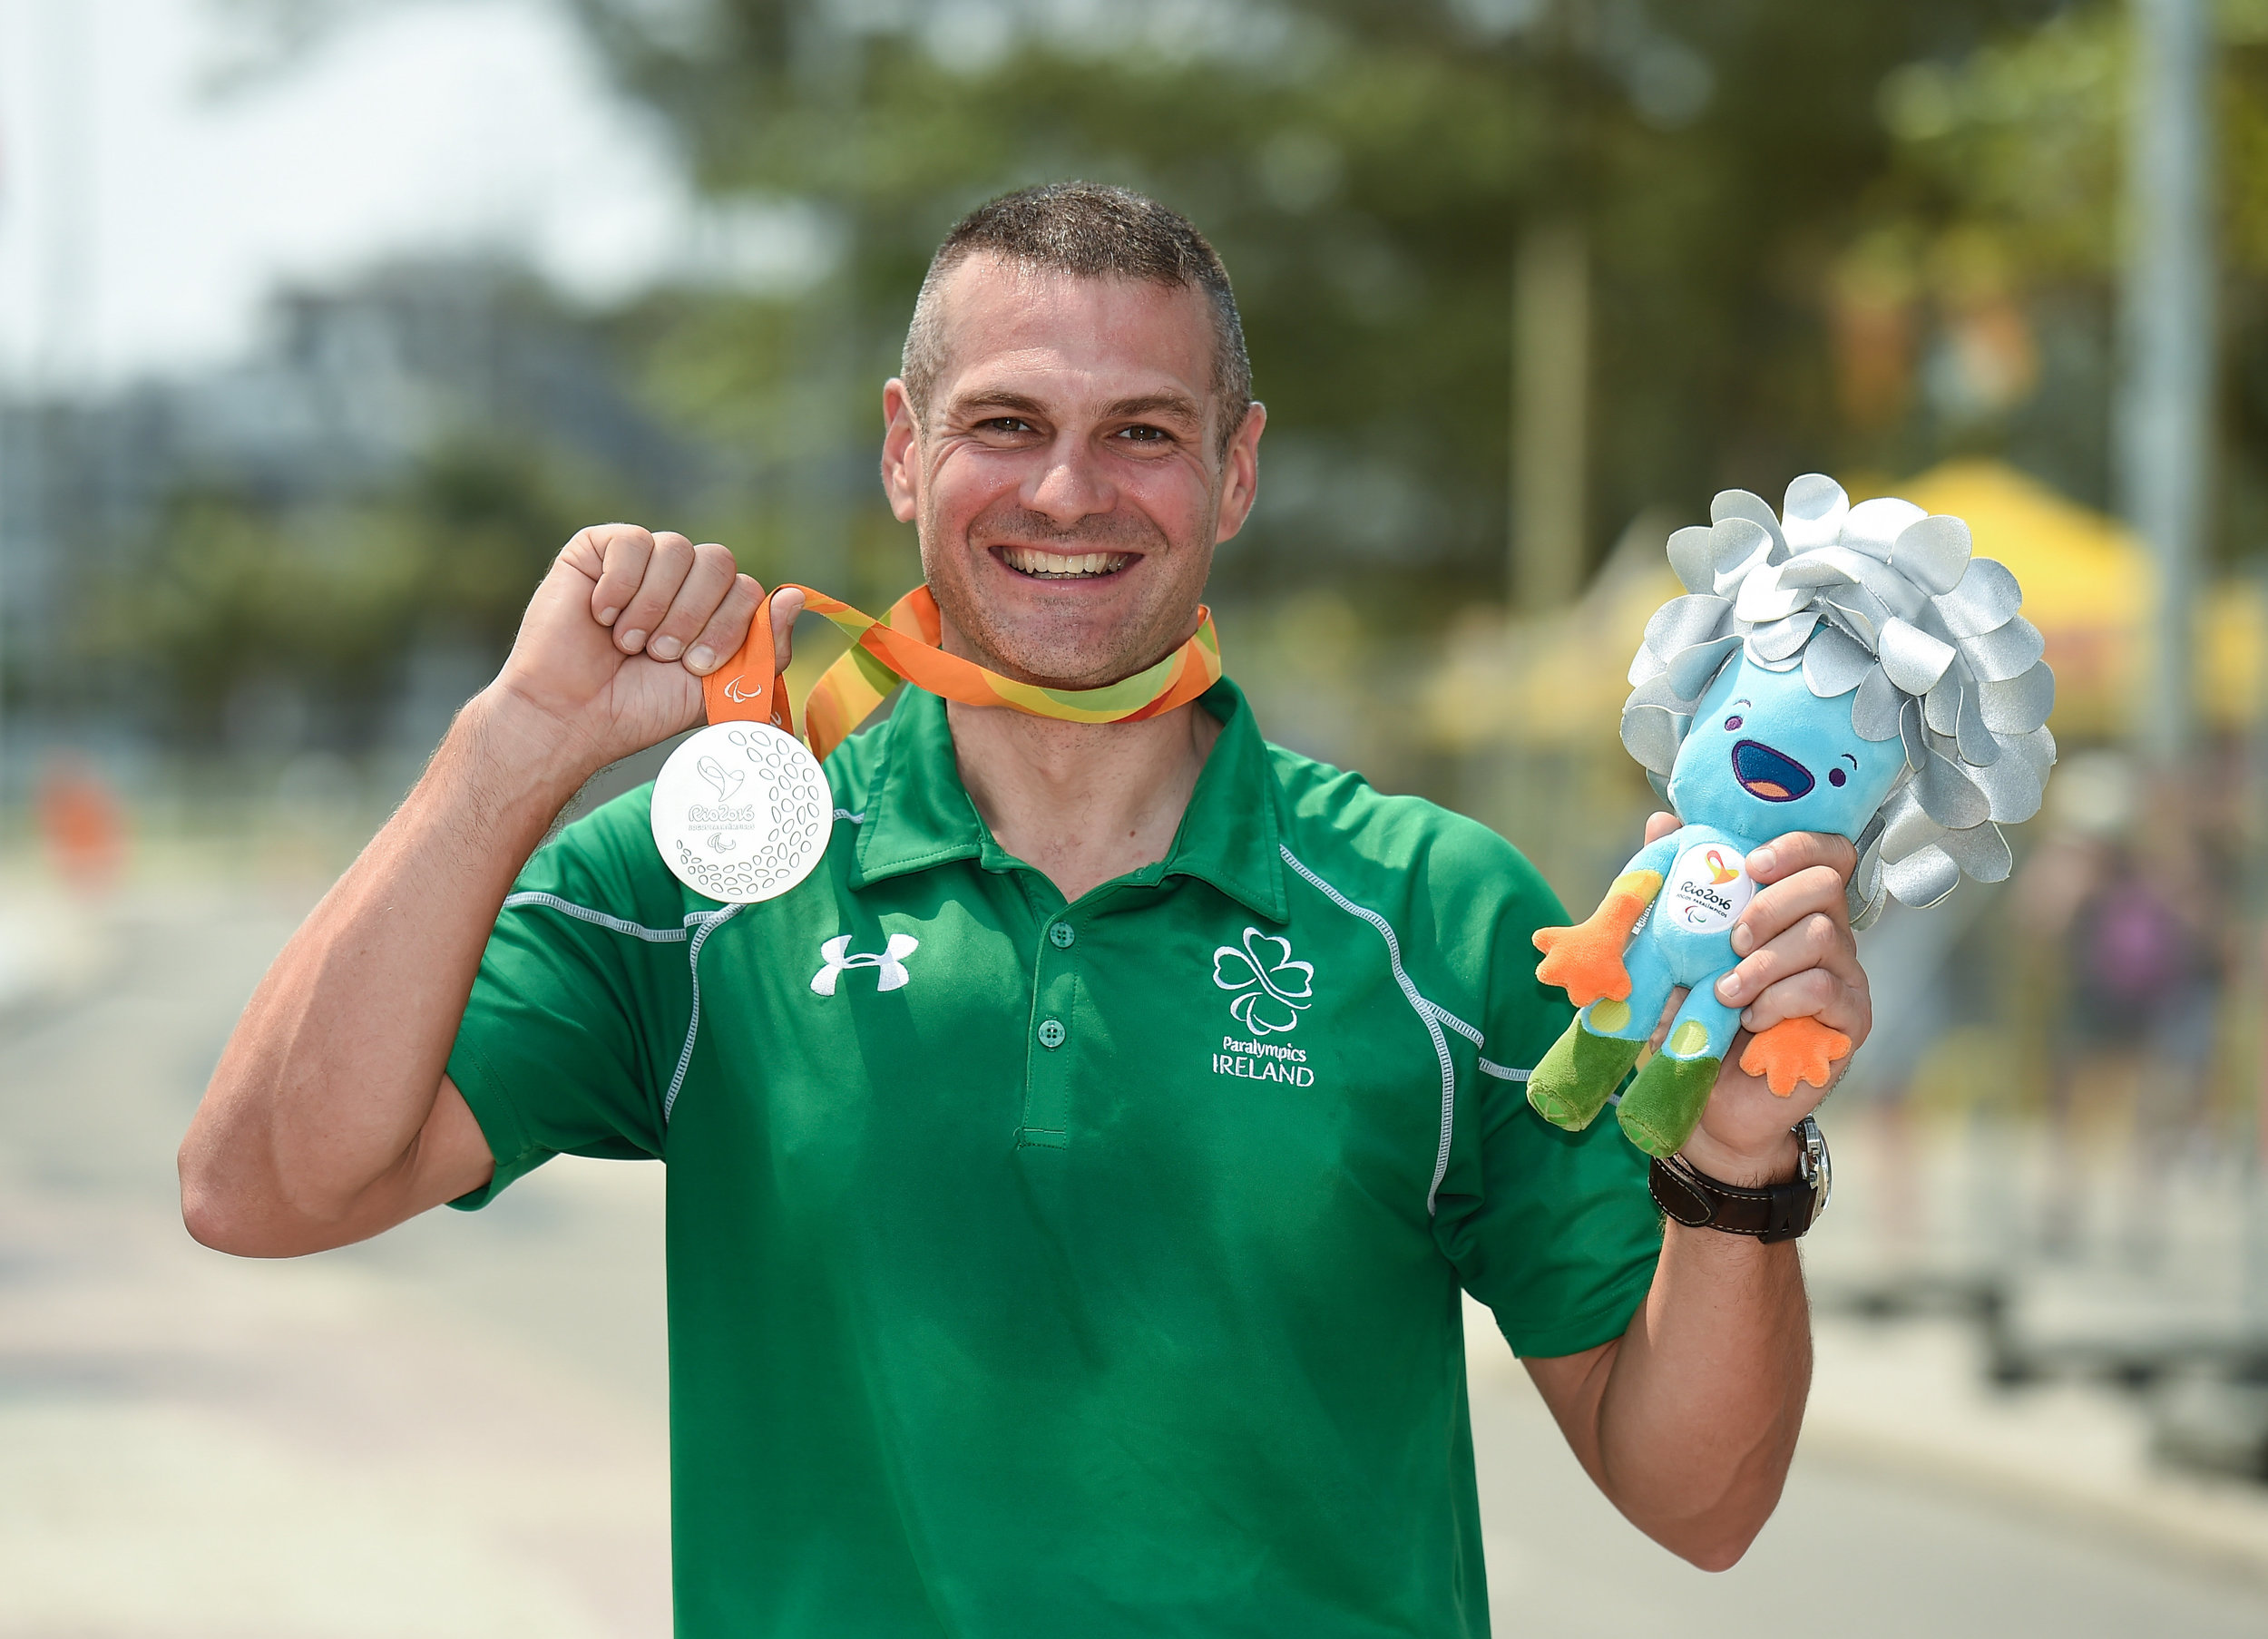 Cycling: Colin Lynch after winning Silver in the C2 Road Time Trial